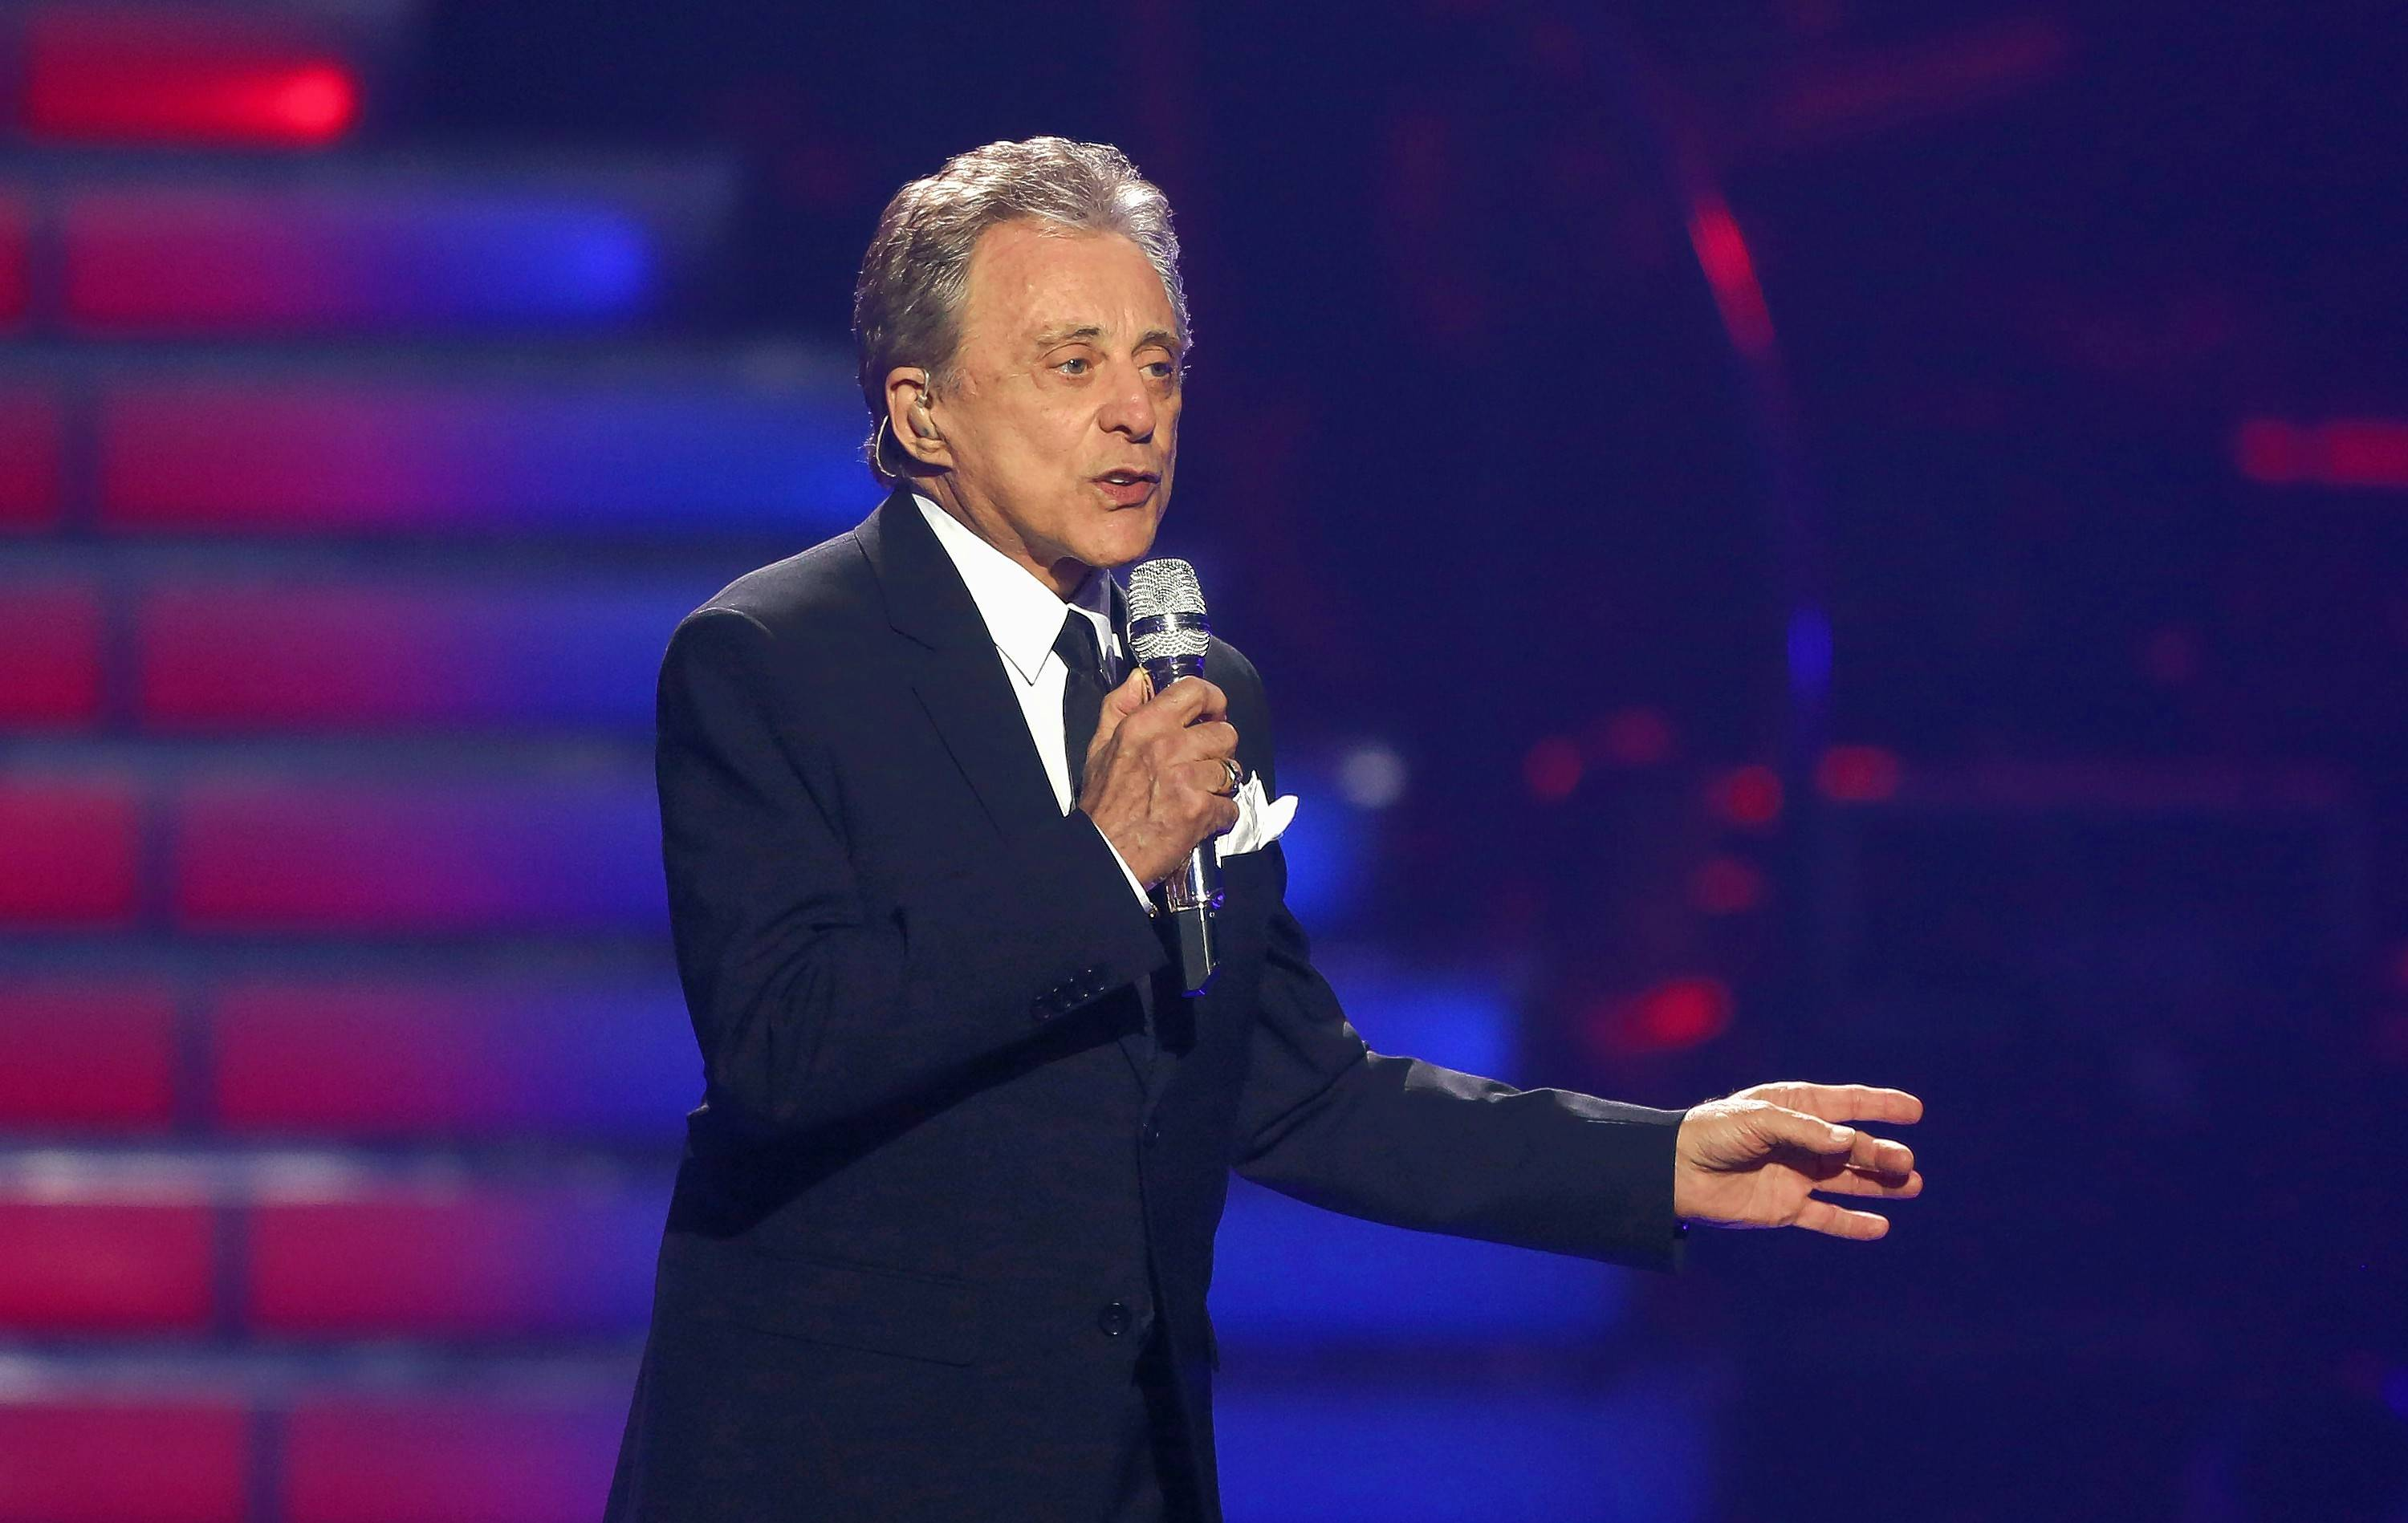 Frankie Valli and The Four Seasons perform their hits Friday, Sept. 8, at Ravinia.